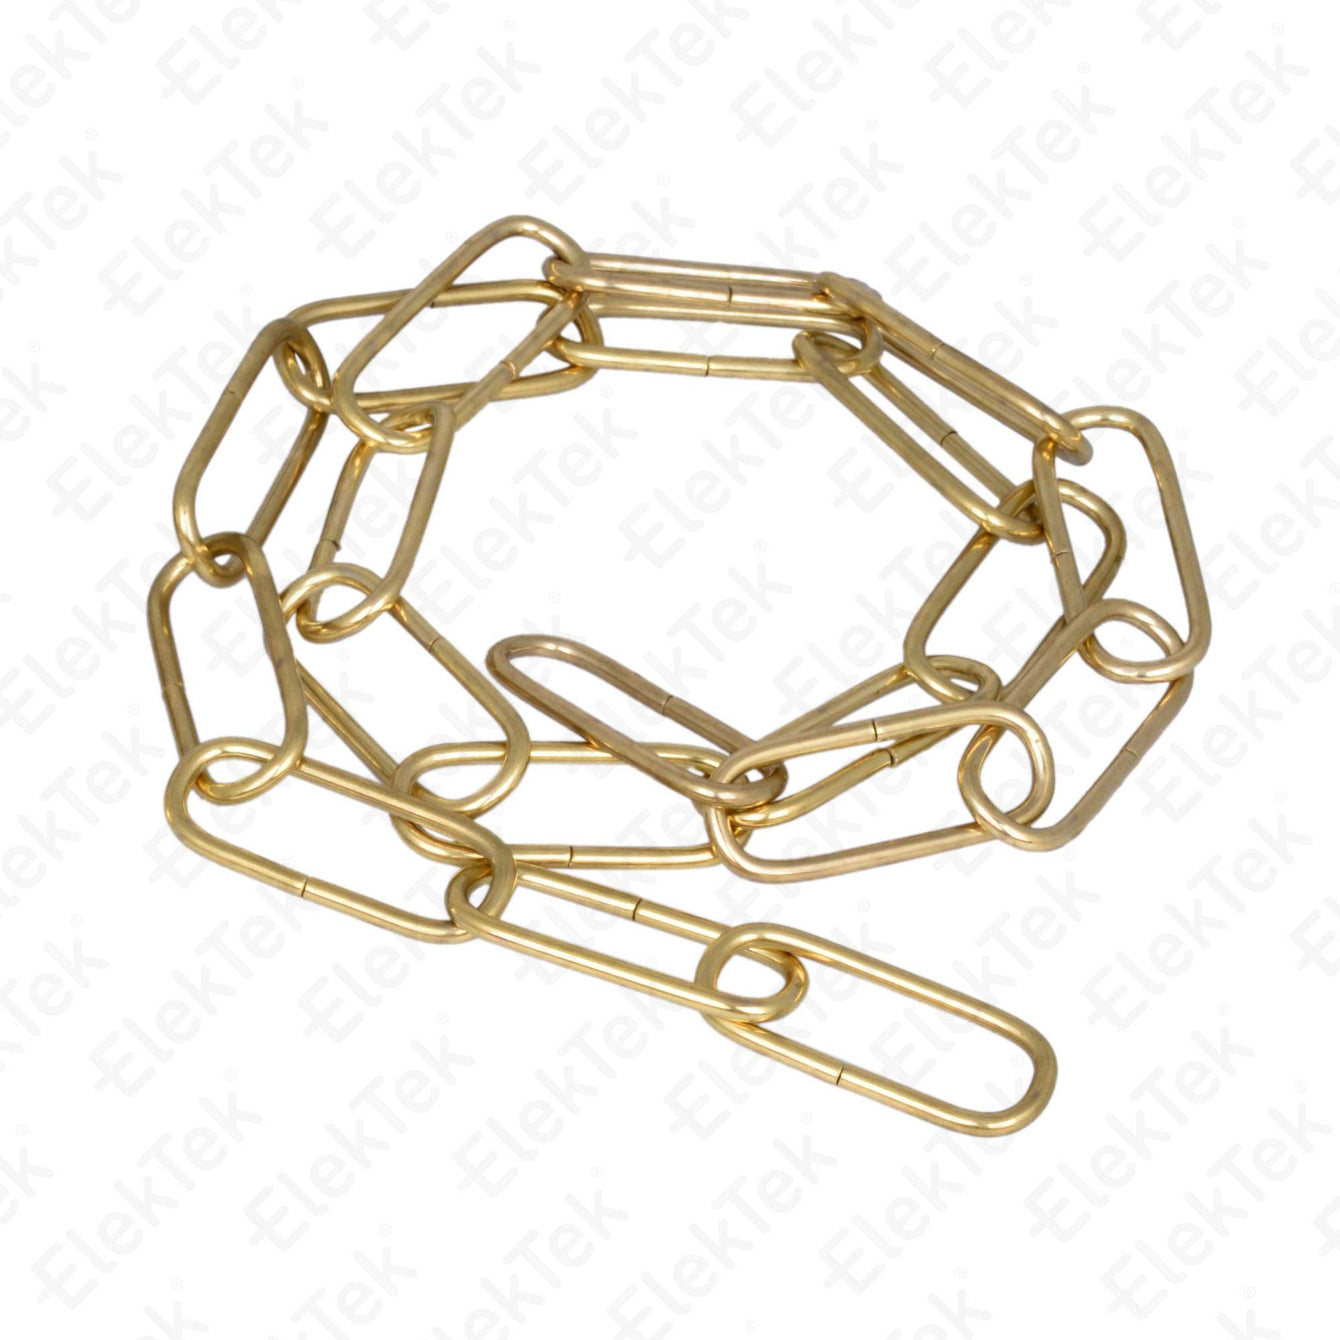 ElekTek Open Link Chain For Chandelier and Lighting Medium 38mm x 15mm Per Linear Metre Chrome